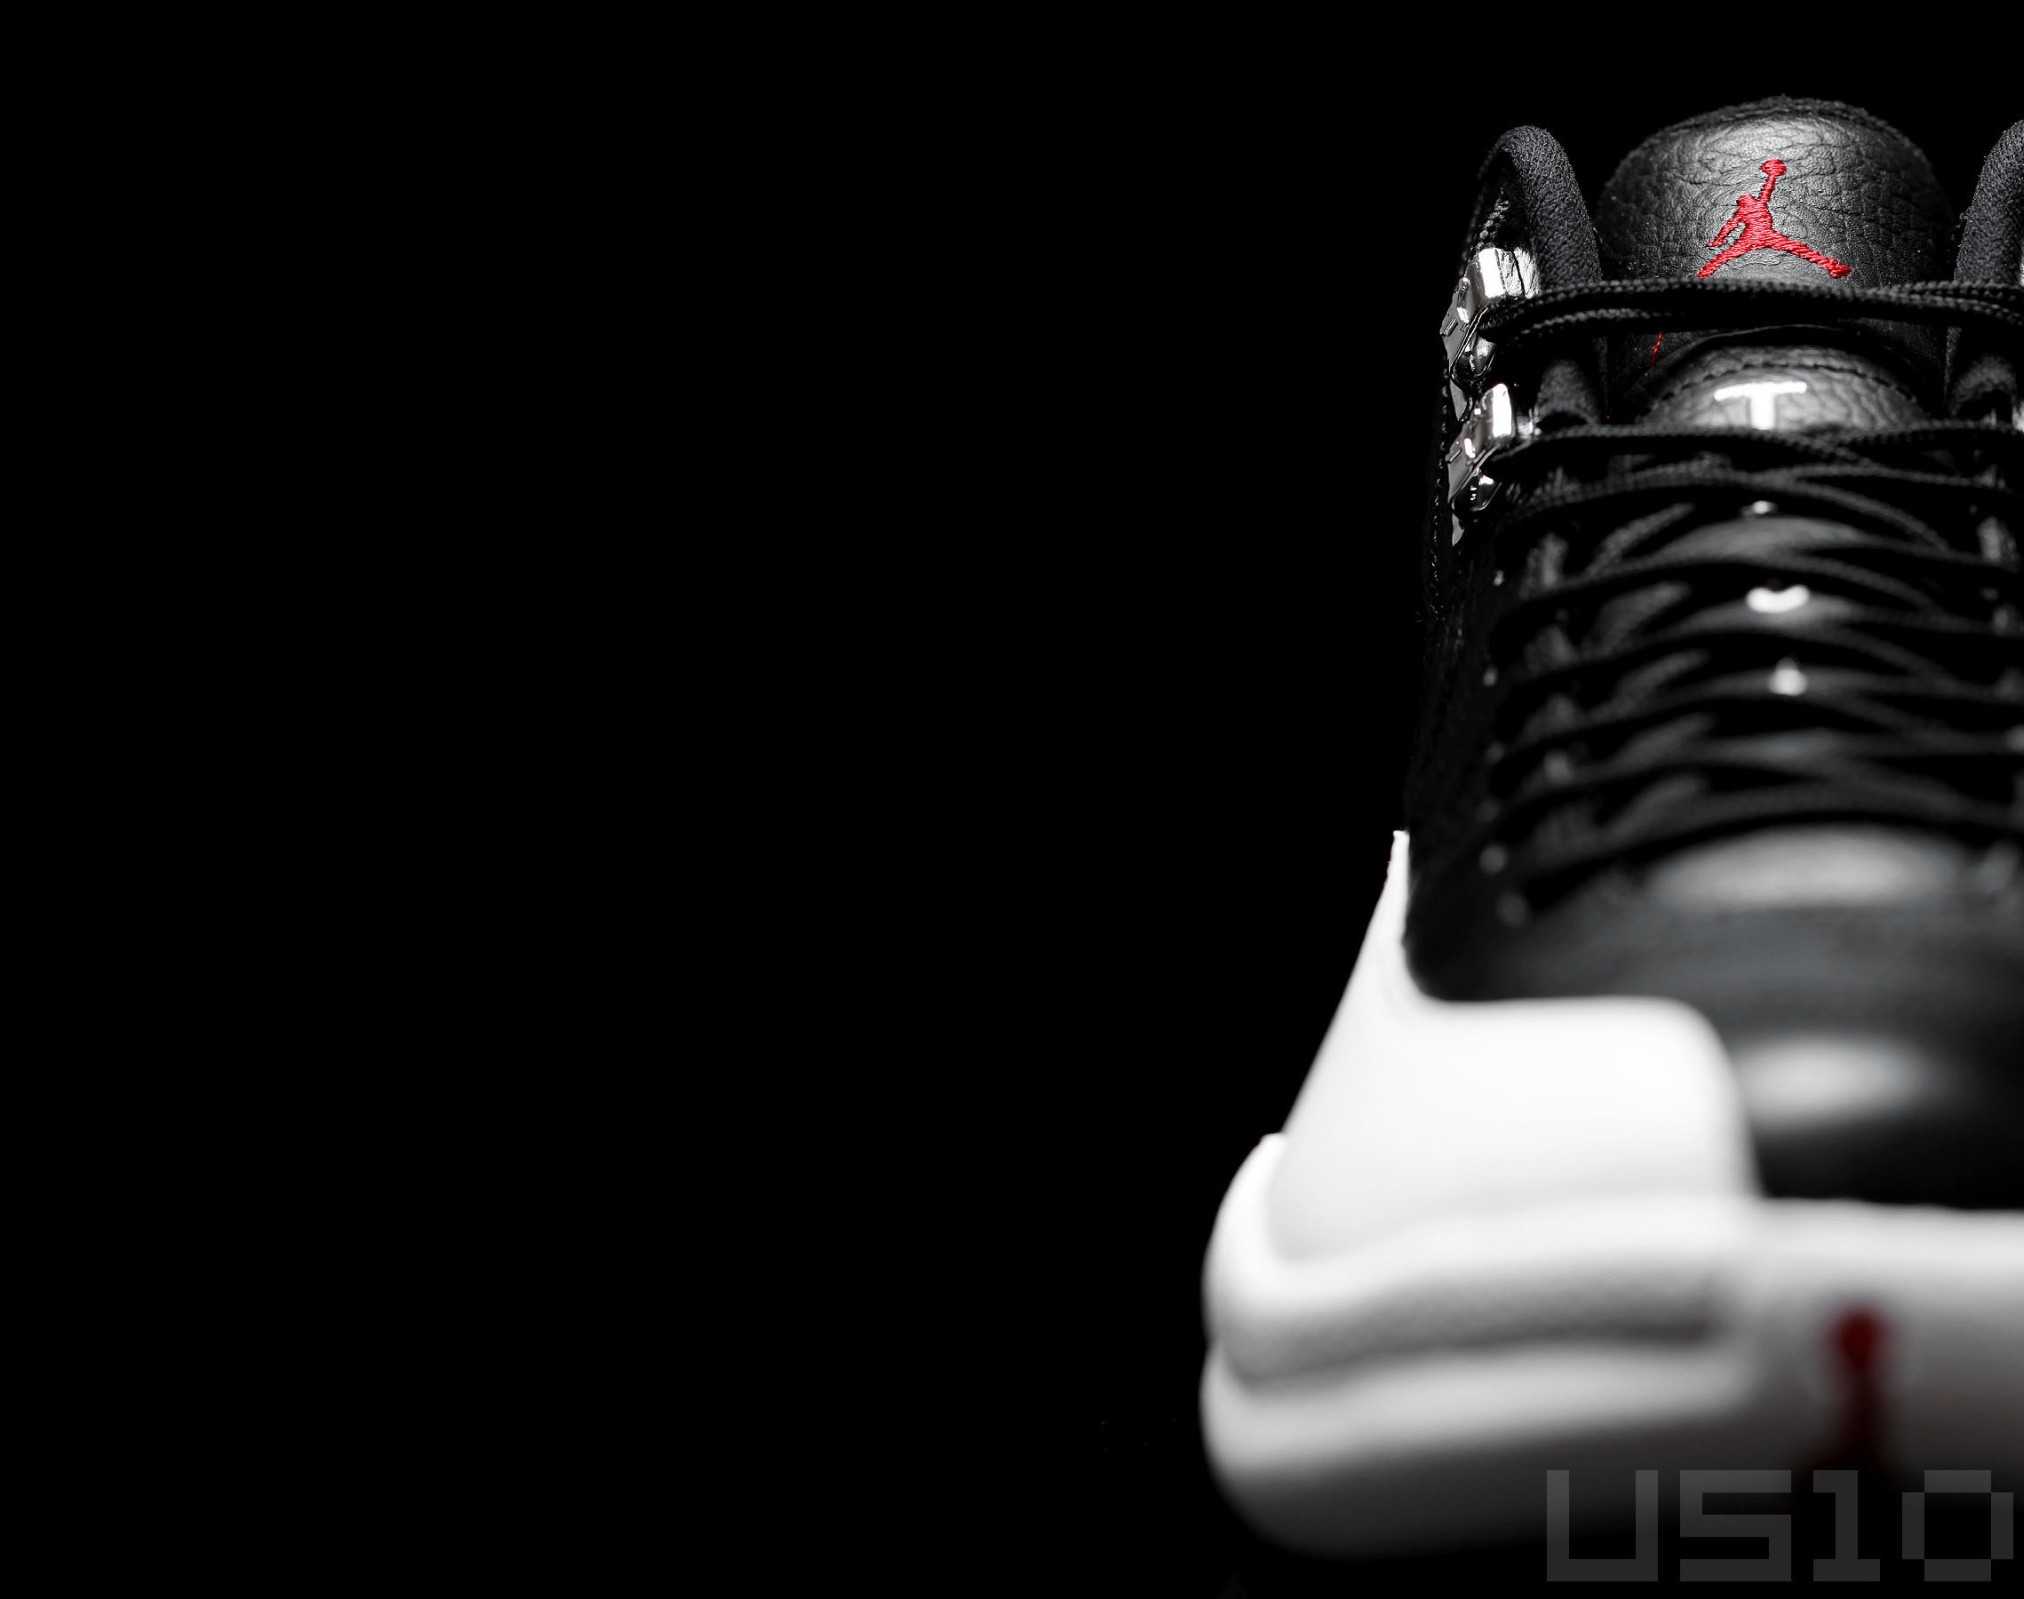 Michael jordan release dates in Melbourne